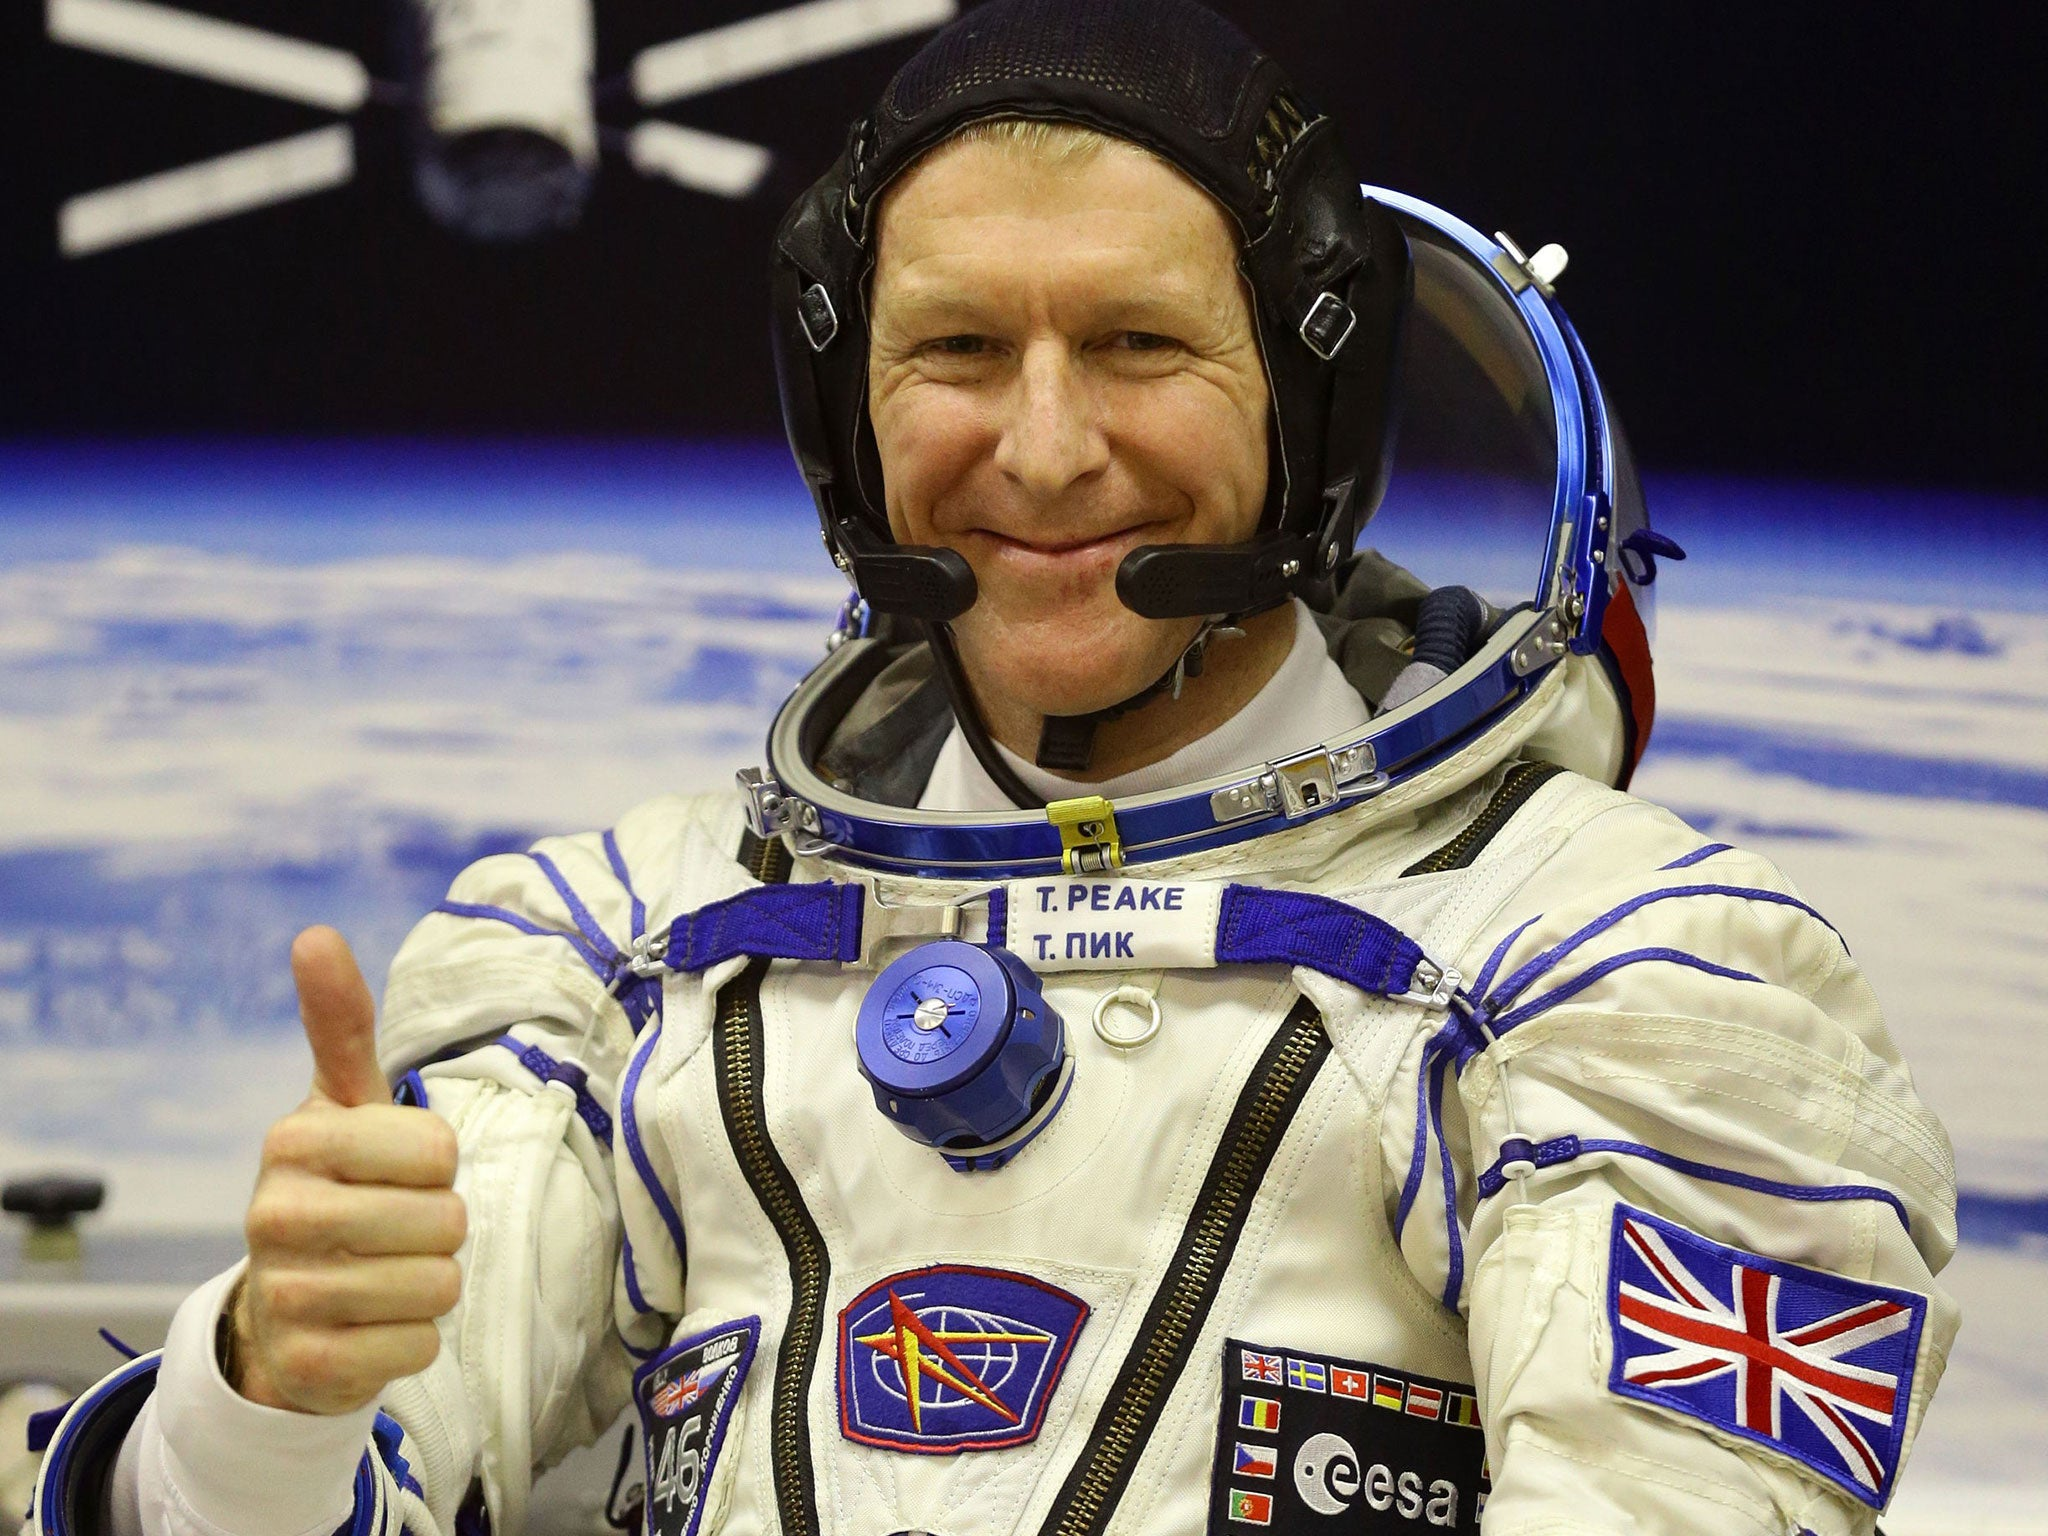 Tim Peake Uk Astronaut To Be First British Person To Walk In Space The Independent